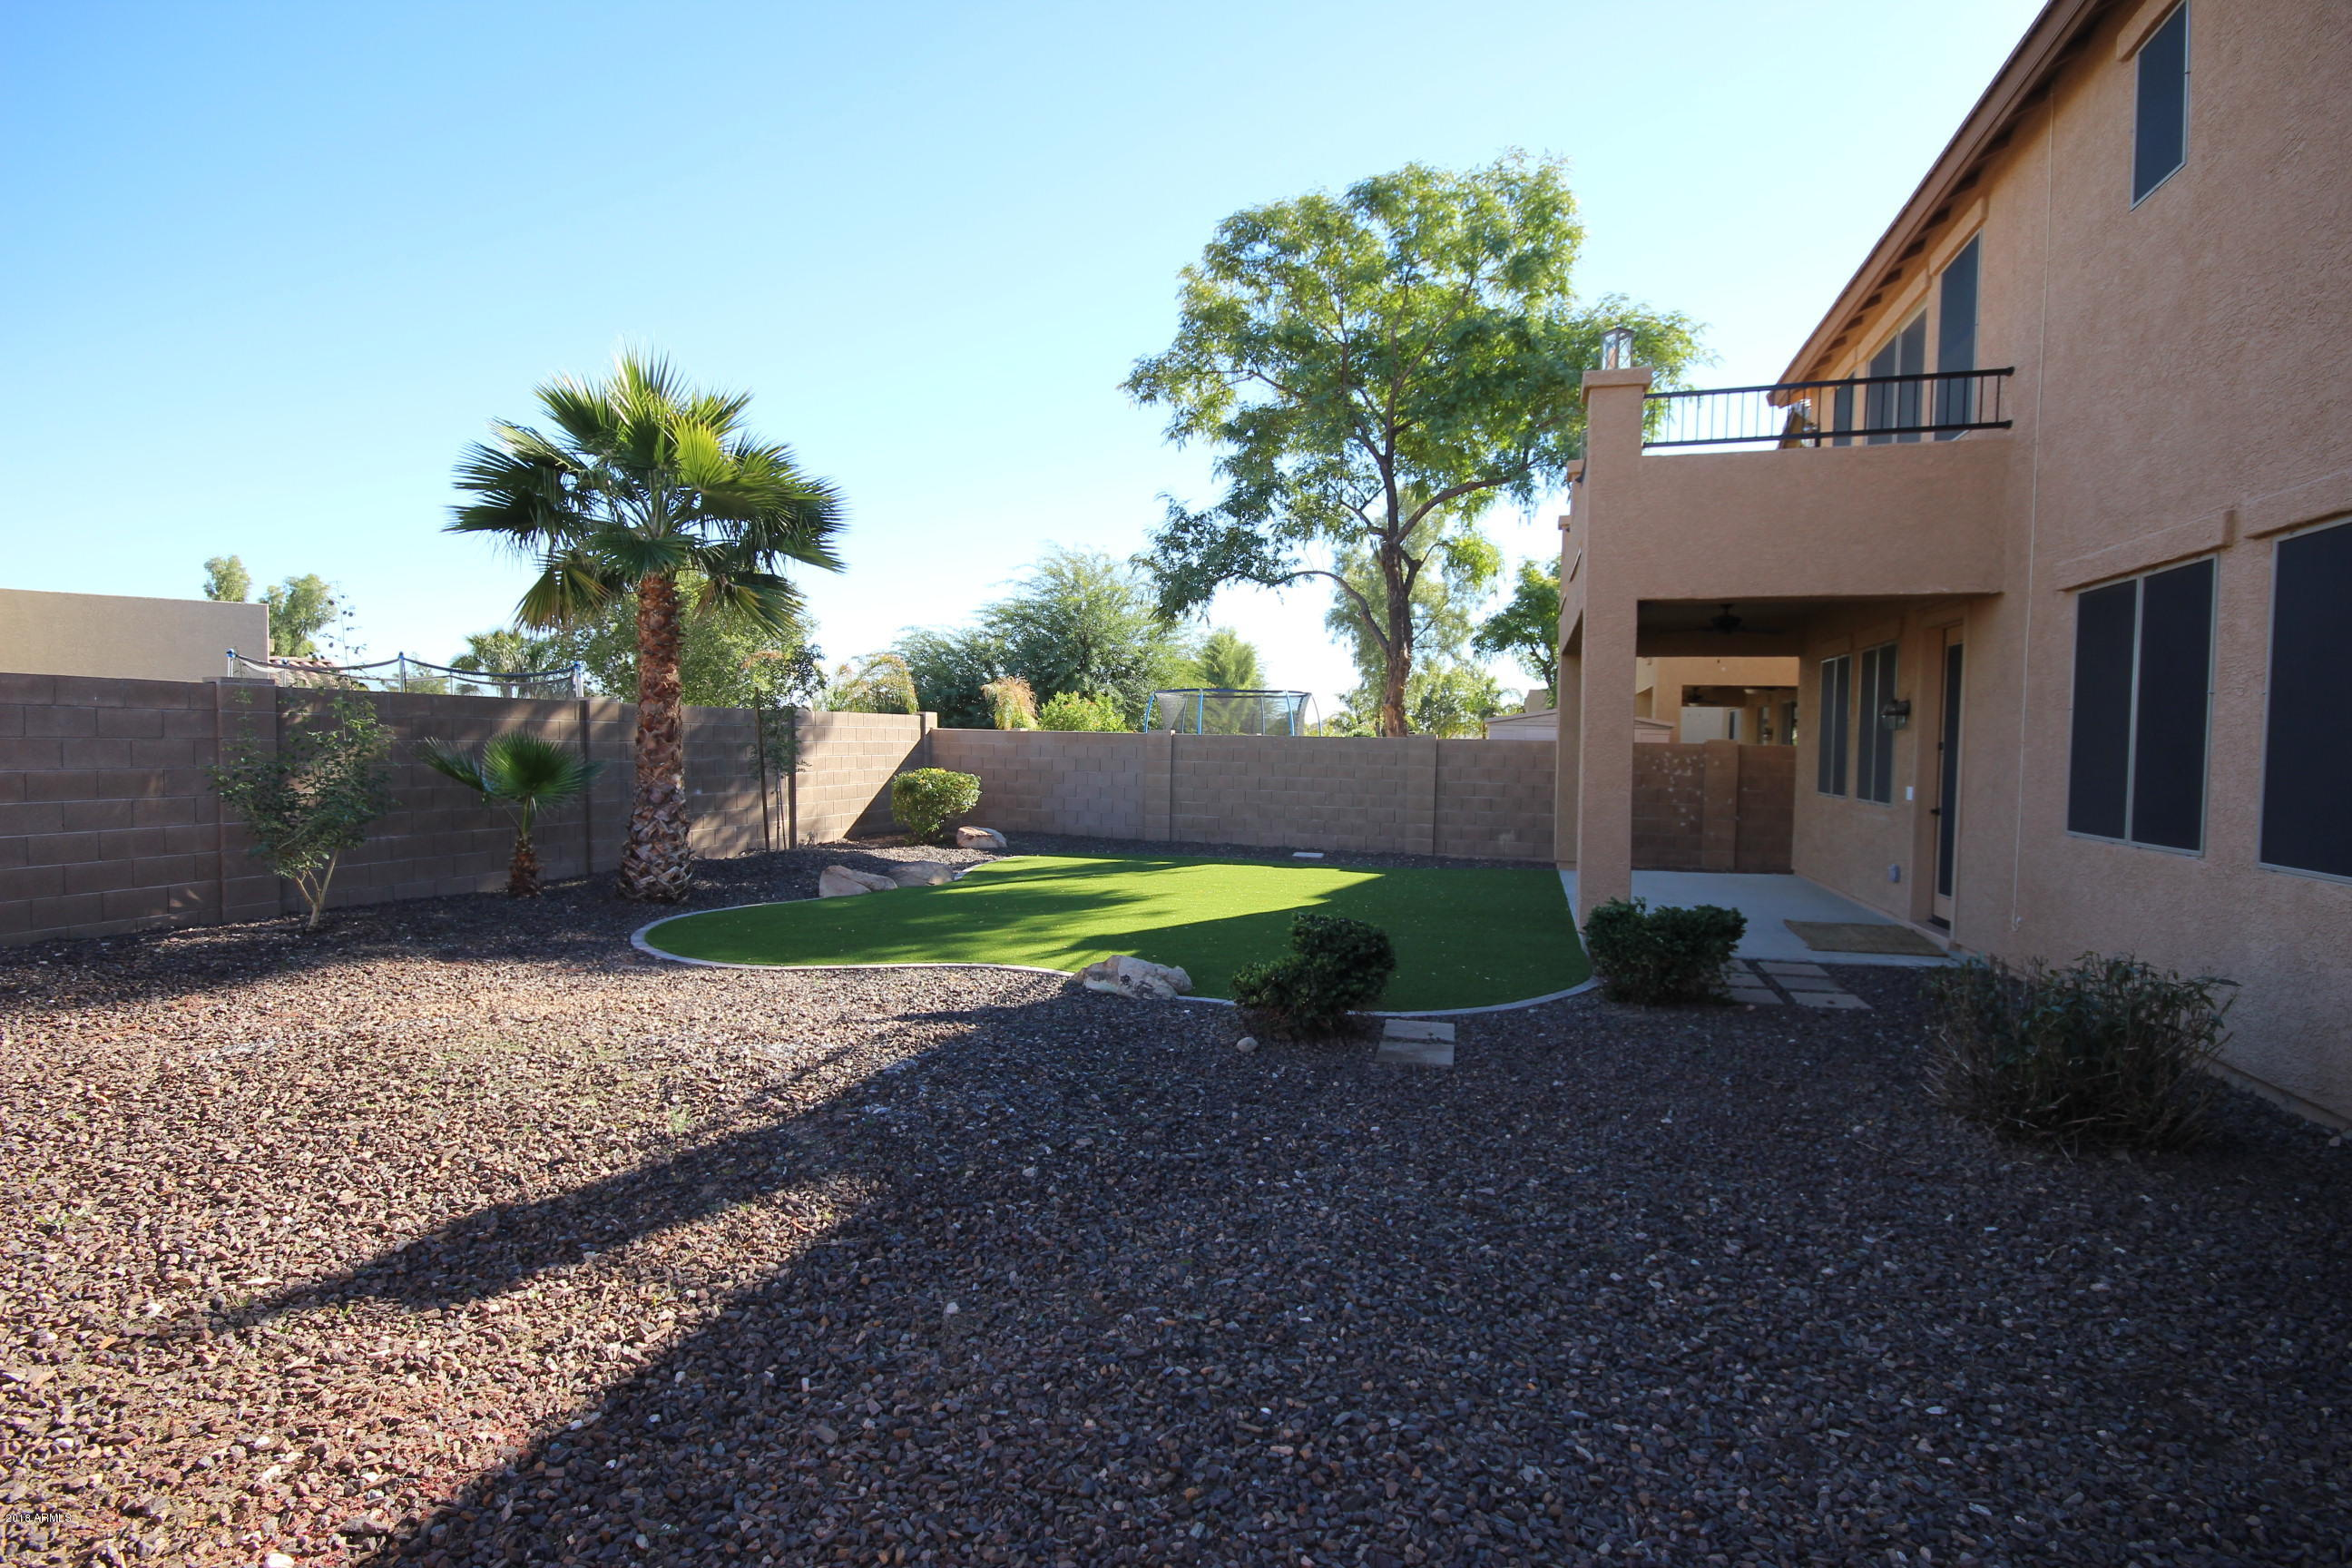 9825 N 180TH Avenue Waddell, AZ 85355 - MLS #: 5853928